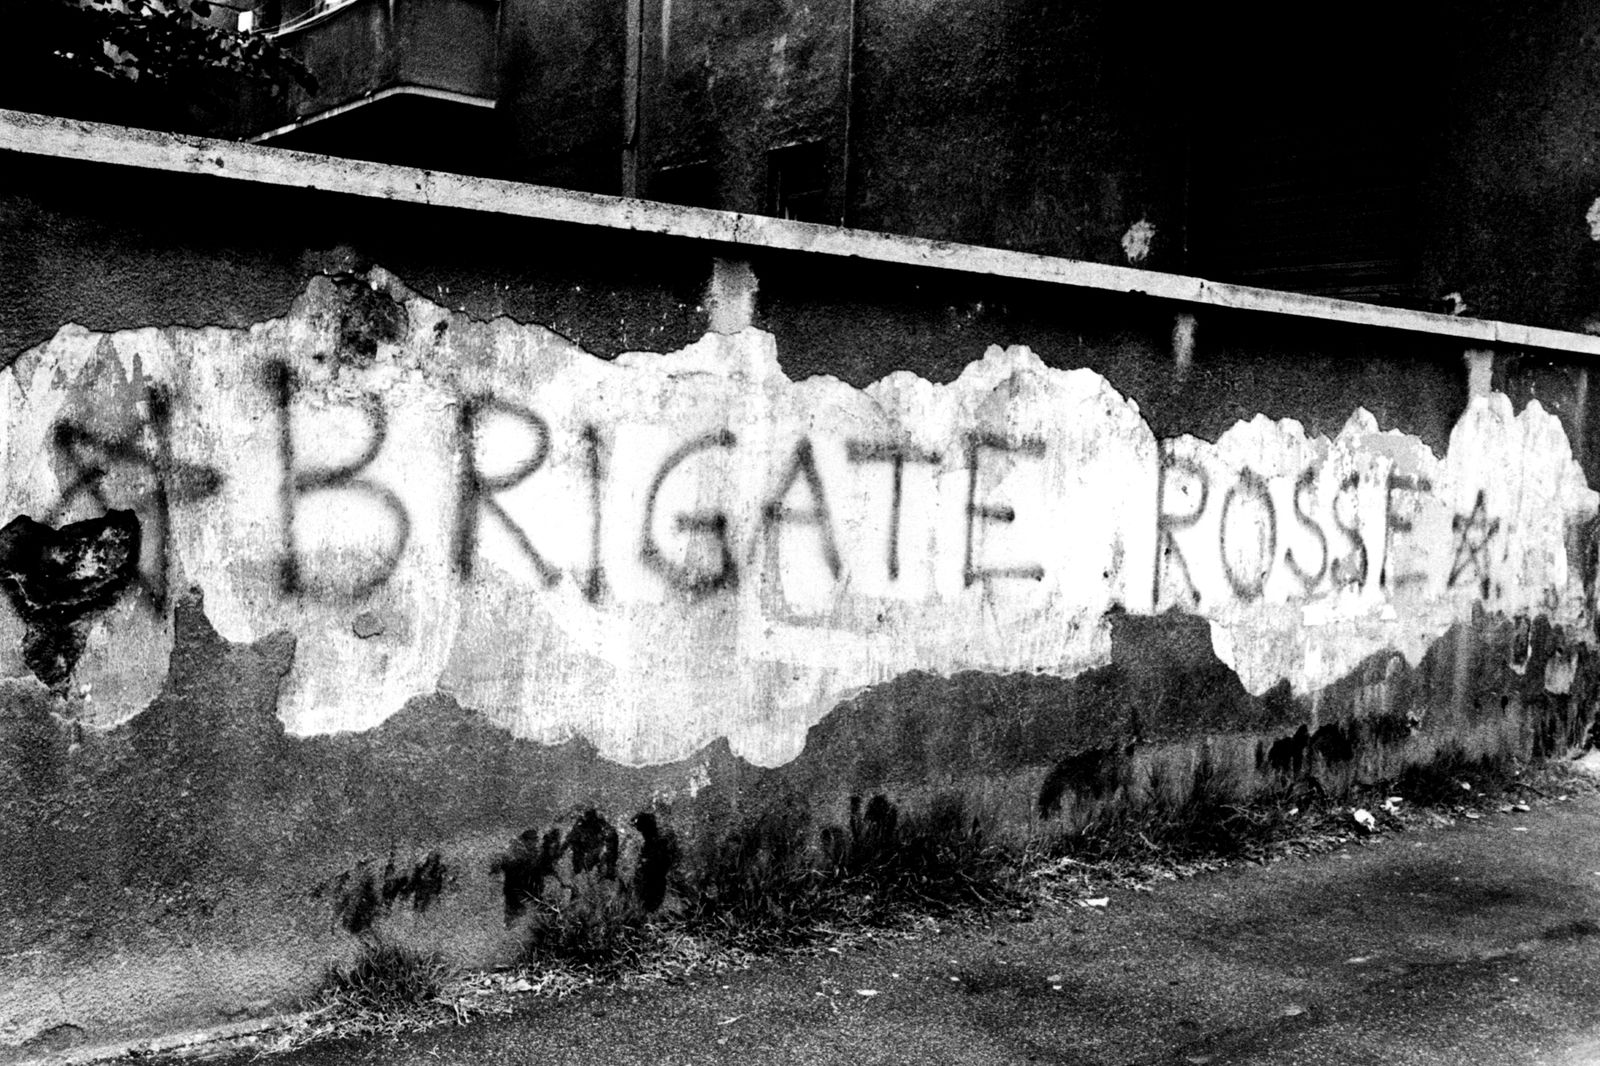 A Graffiti On A Wall Exalting The Red Brigades